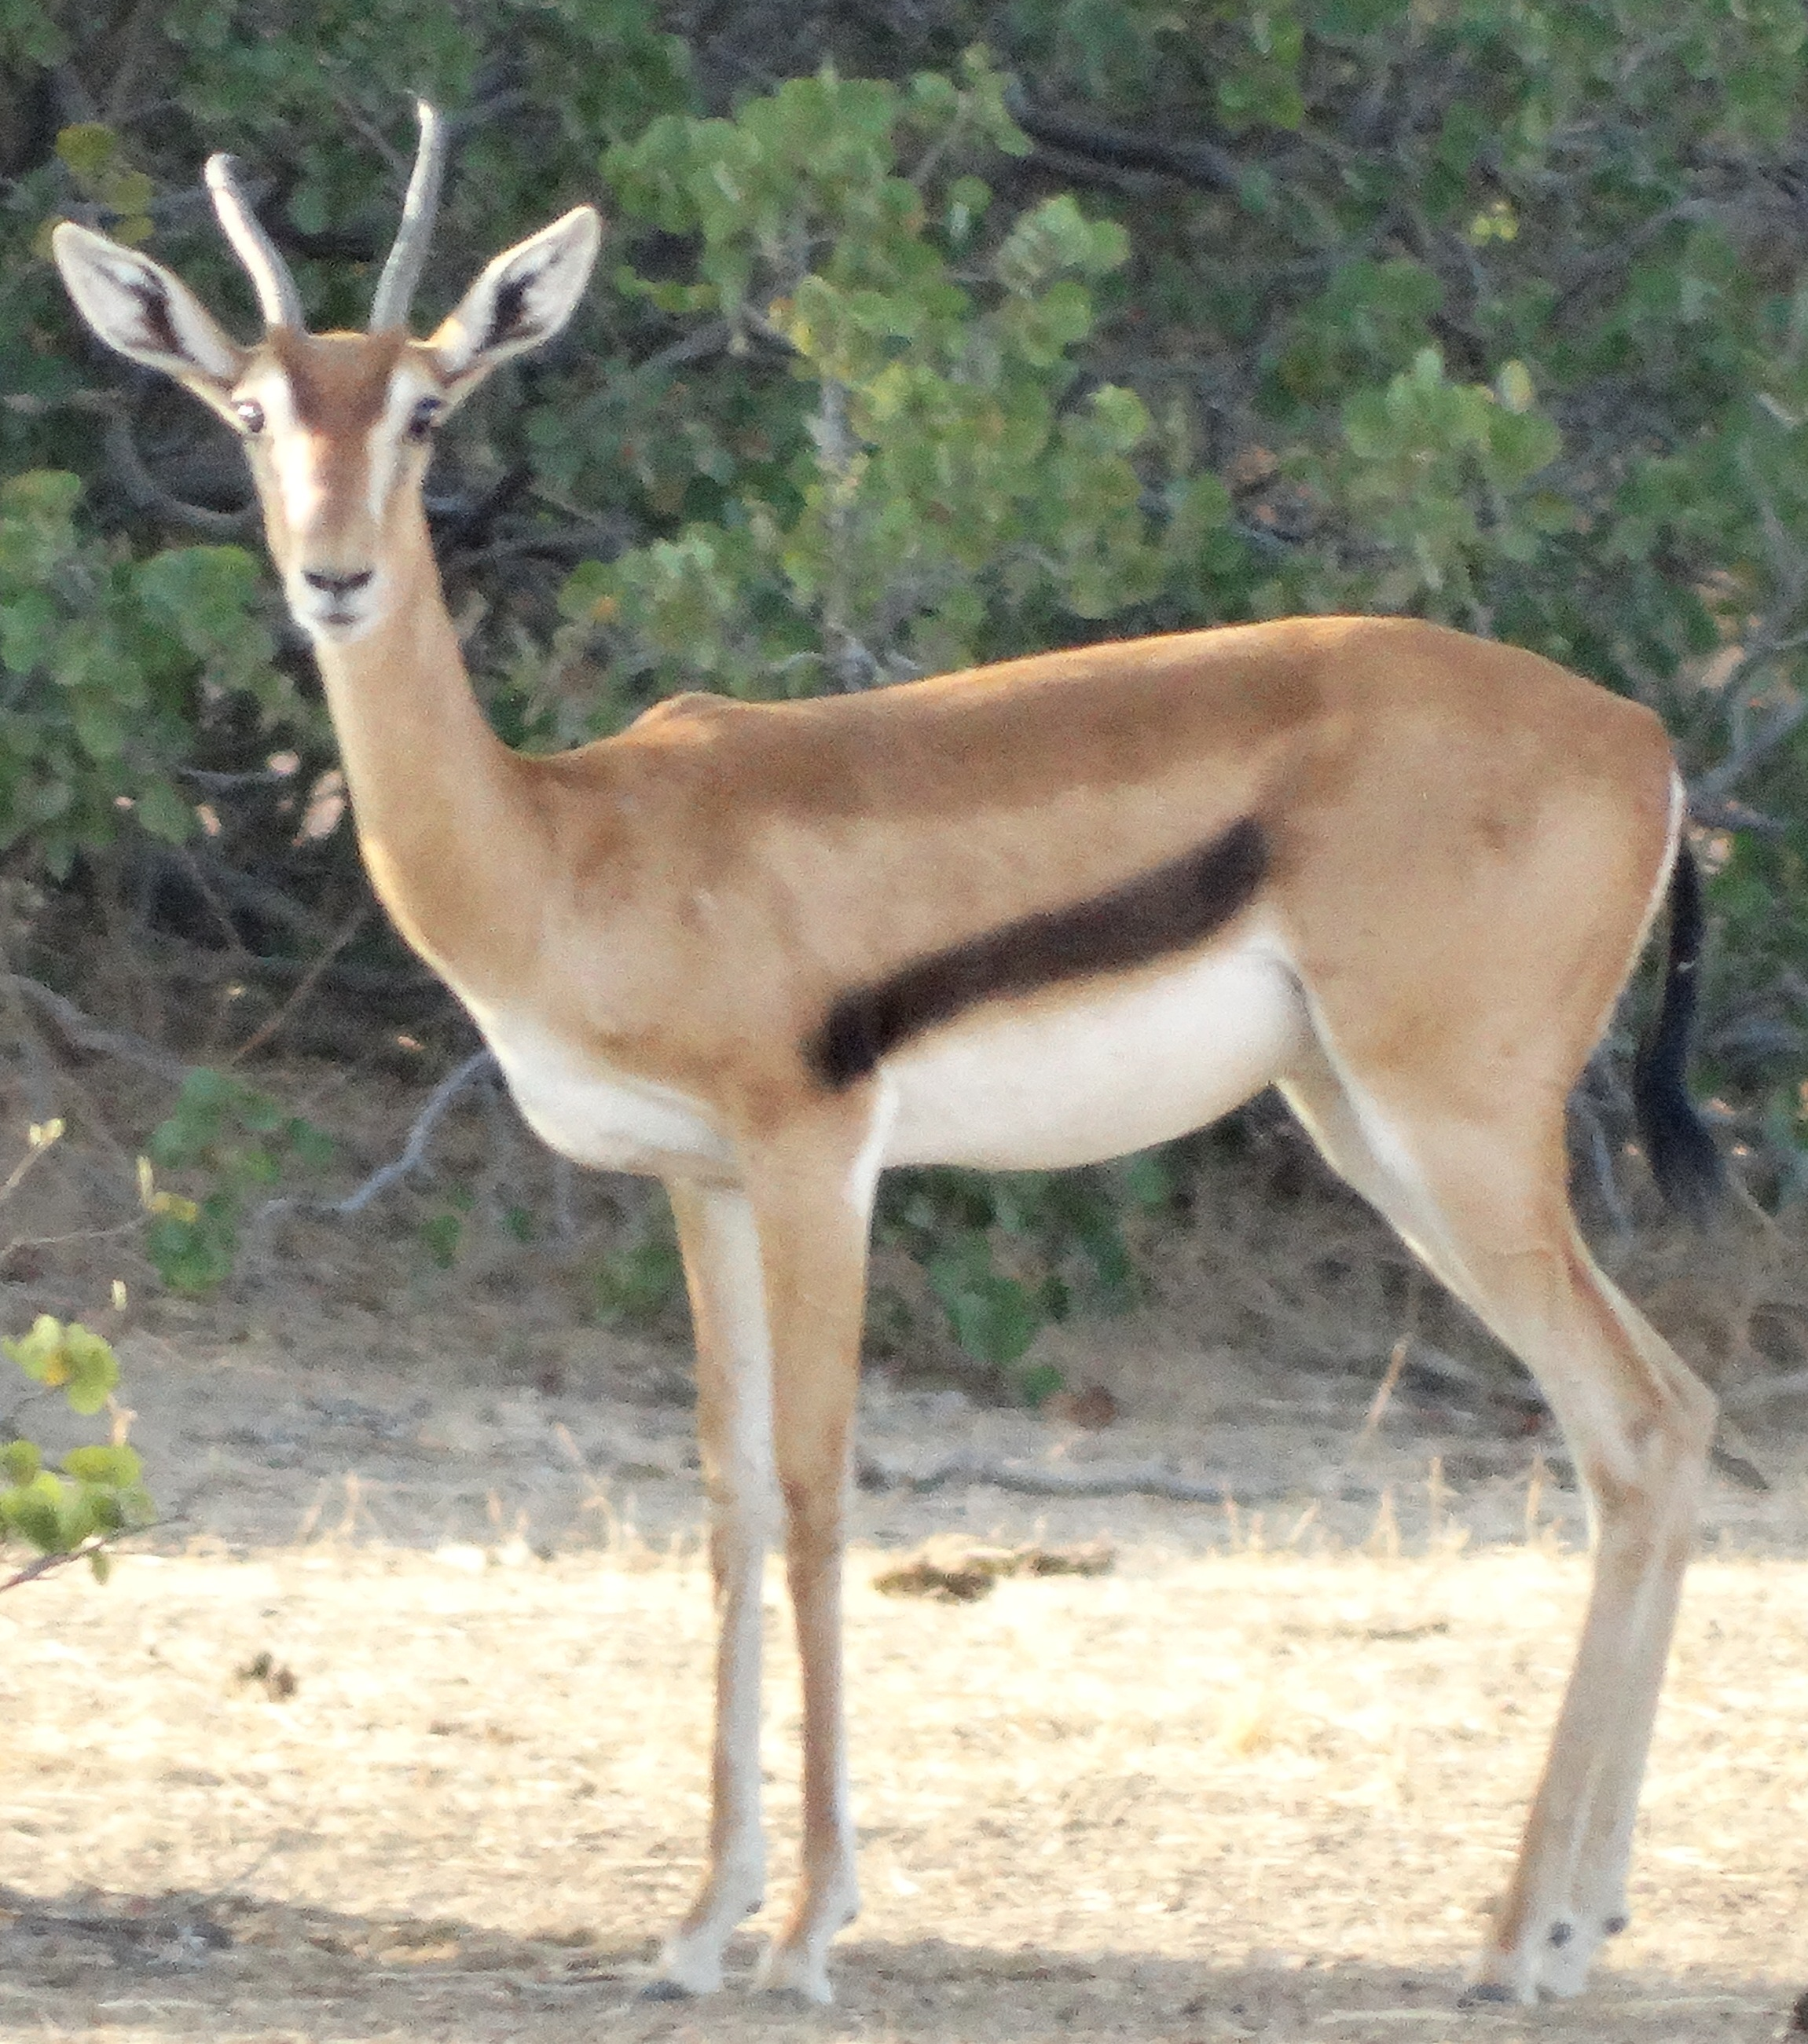 The Eritrean Gazelle (Eudorcas tilonura)